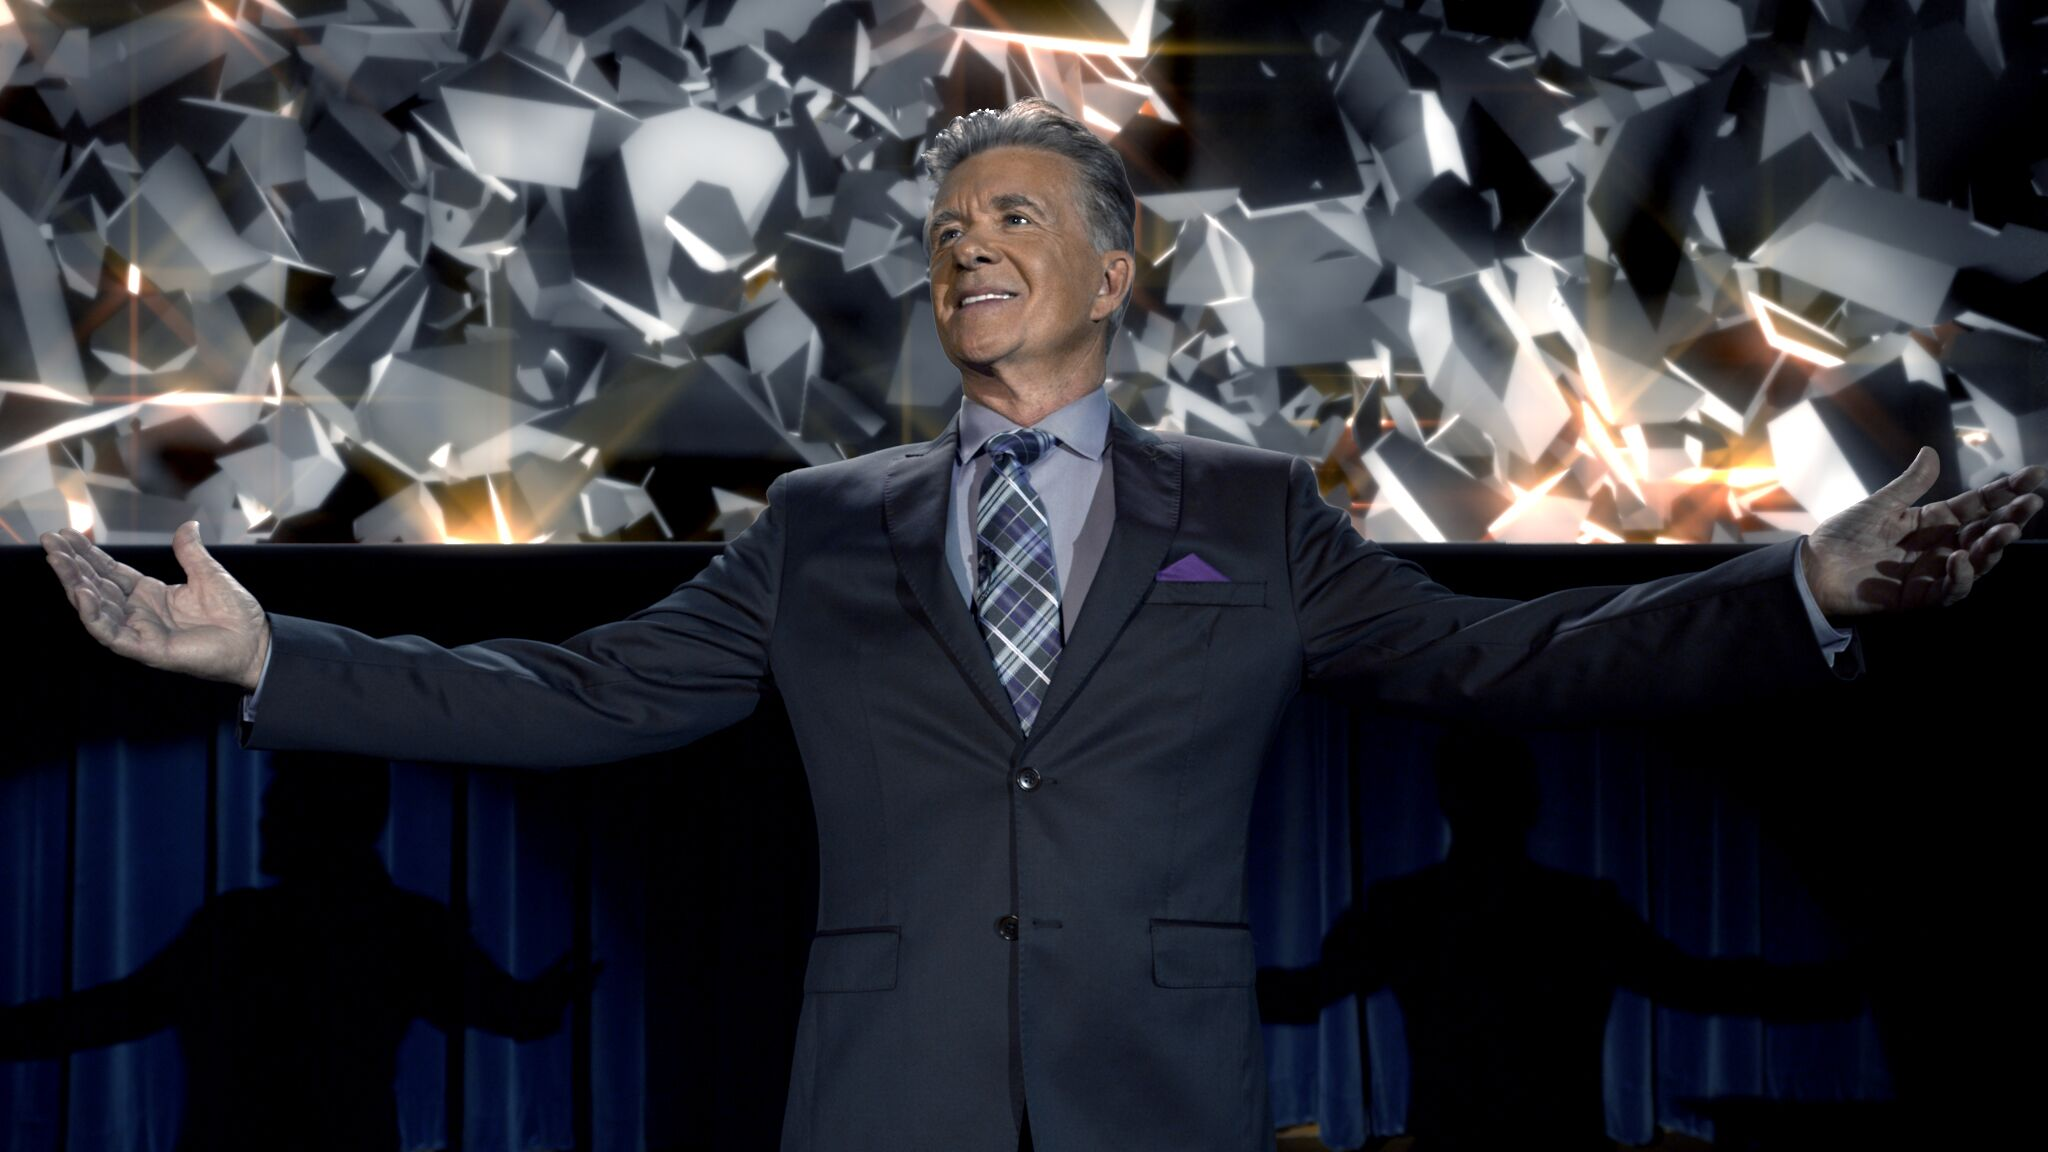 Alan Thicke It's Not My Fault and I Don't Care Anyway GigCity Edmonton